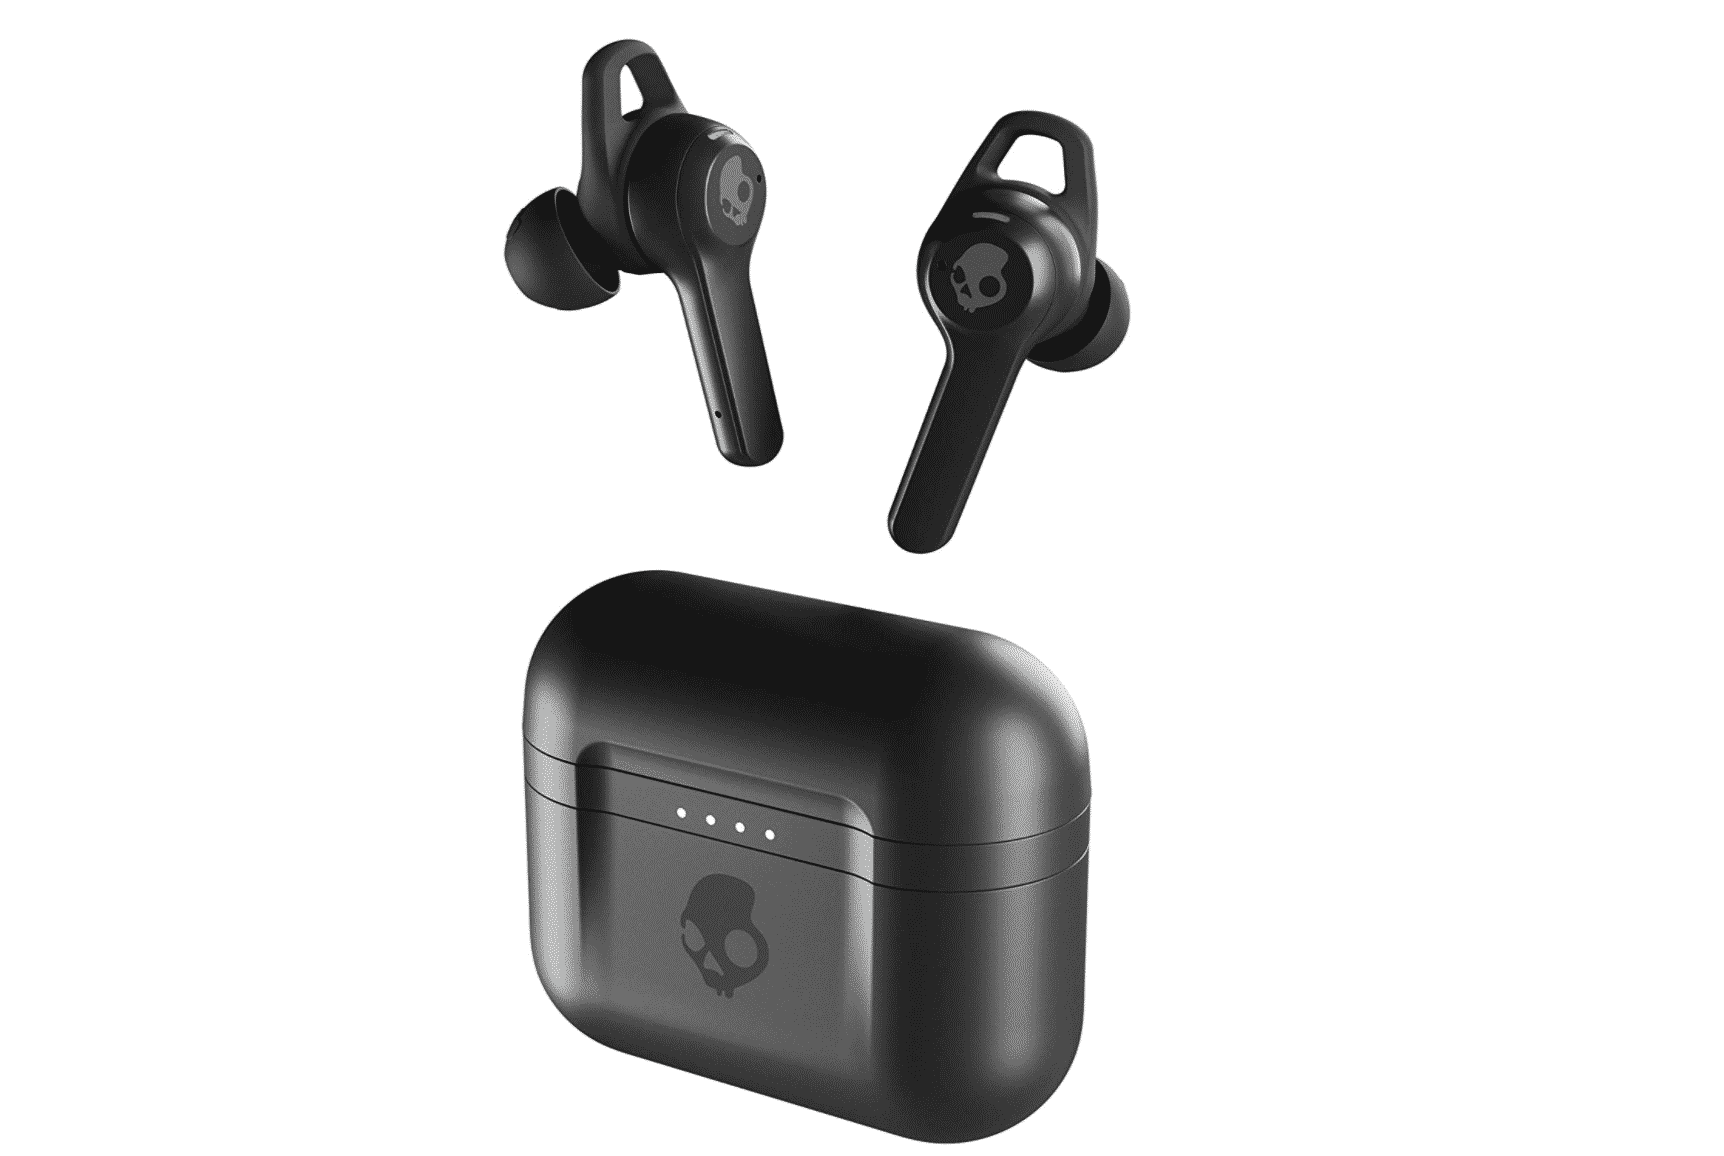 Skullcandy's Noise Cancelling Wireless Earbuds